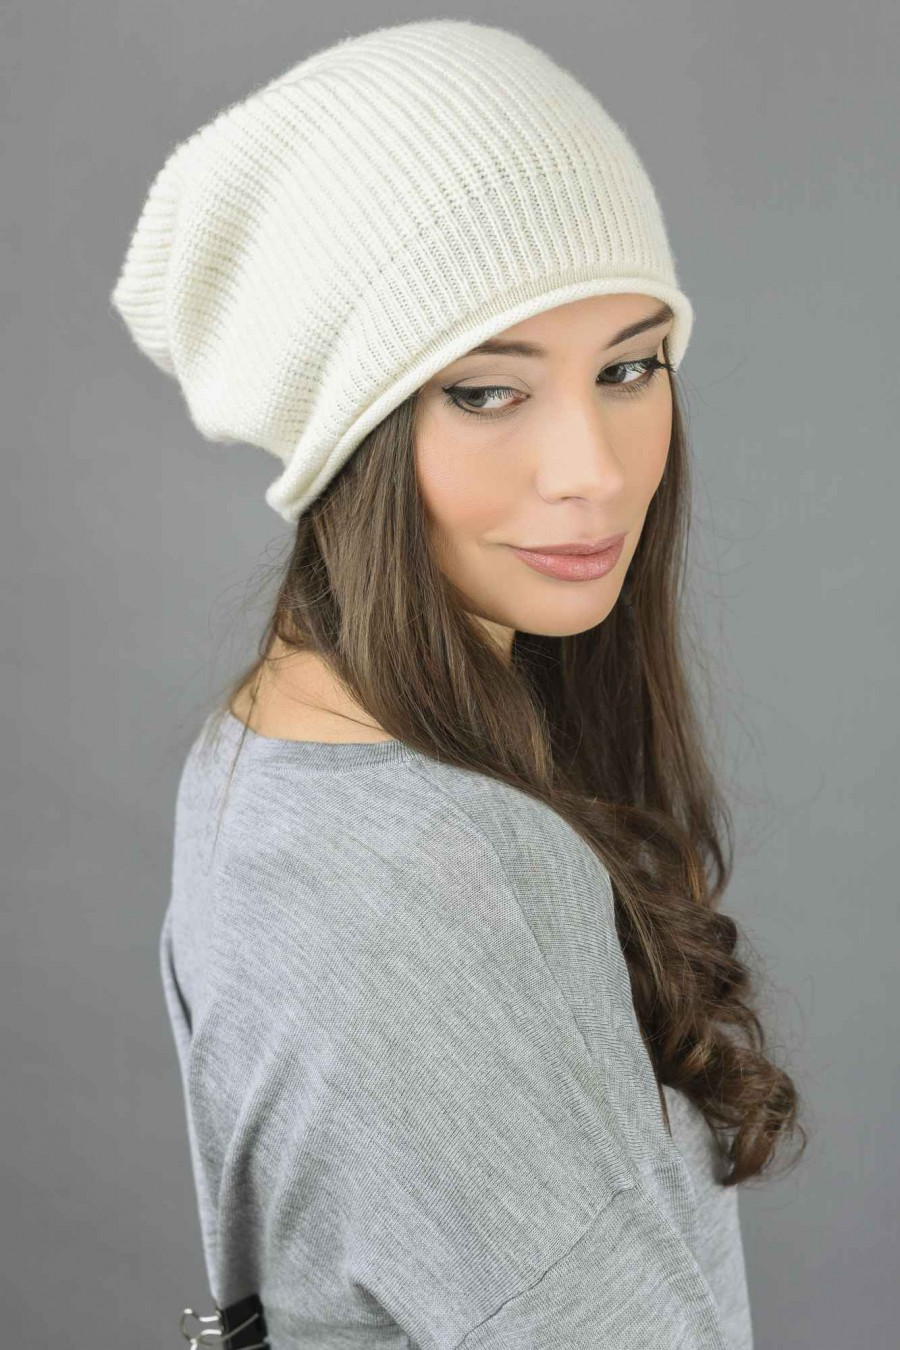 1c263968c0d Pure Cashmere Ribbed Knitted Slouchy Beanie Hat in Cream White ...